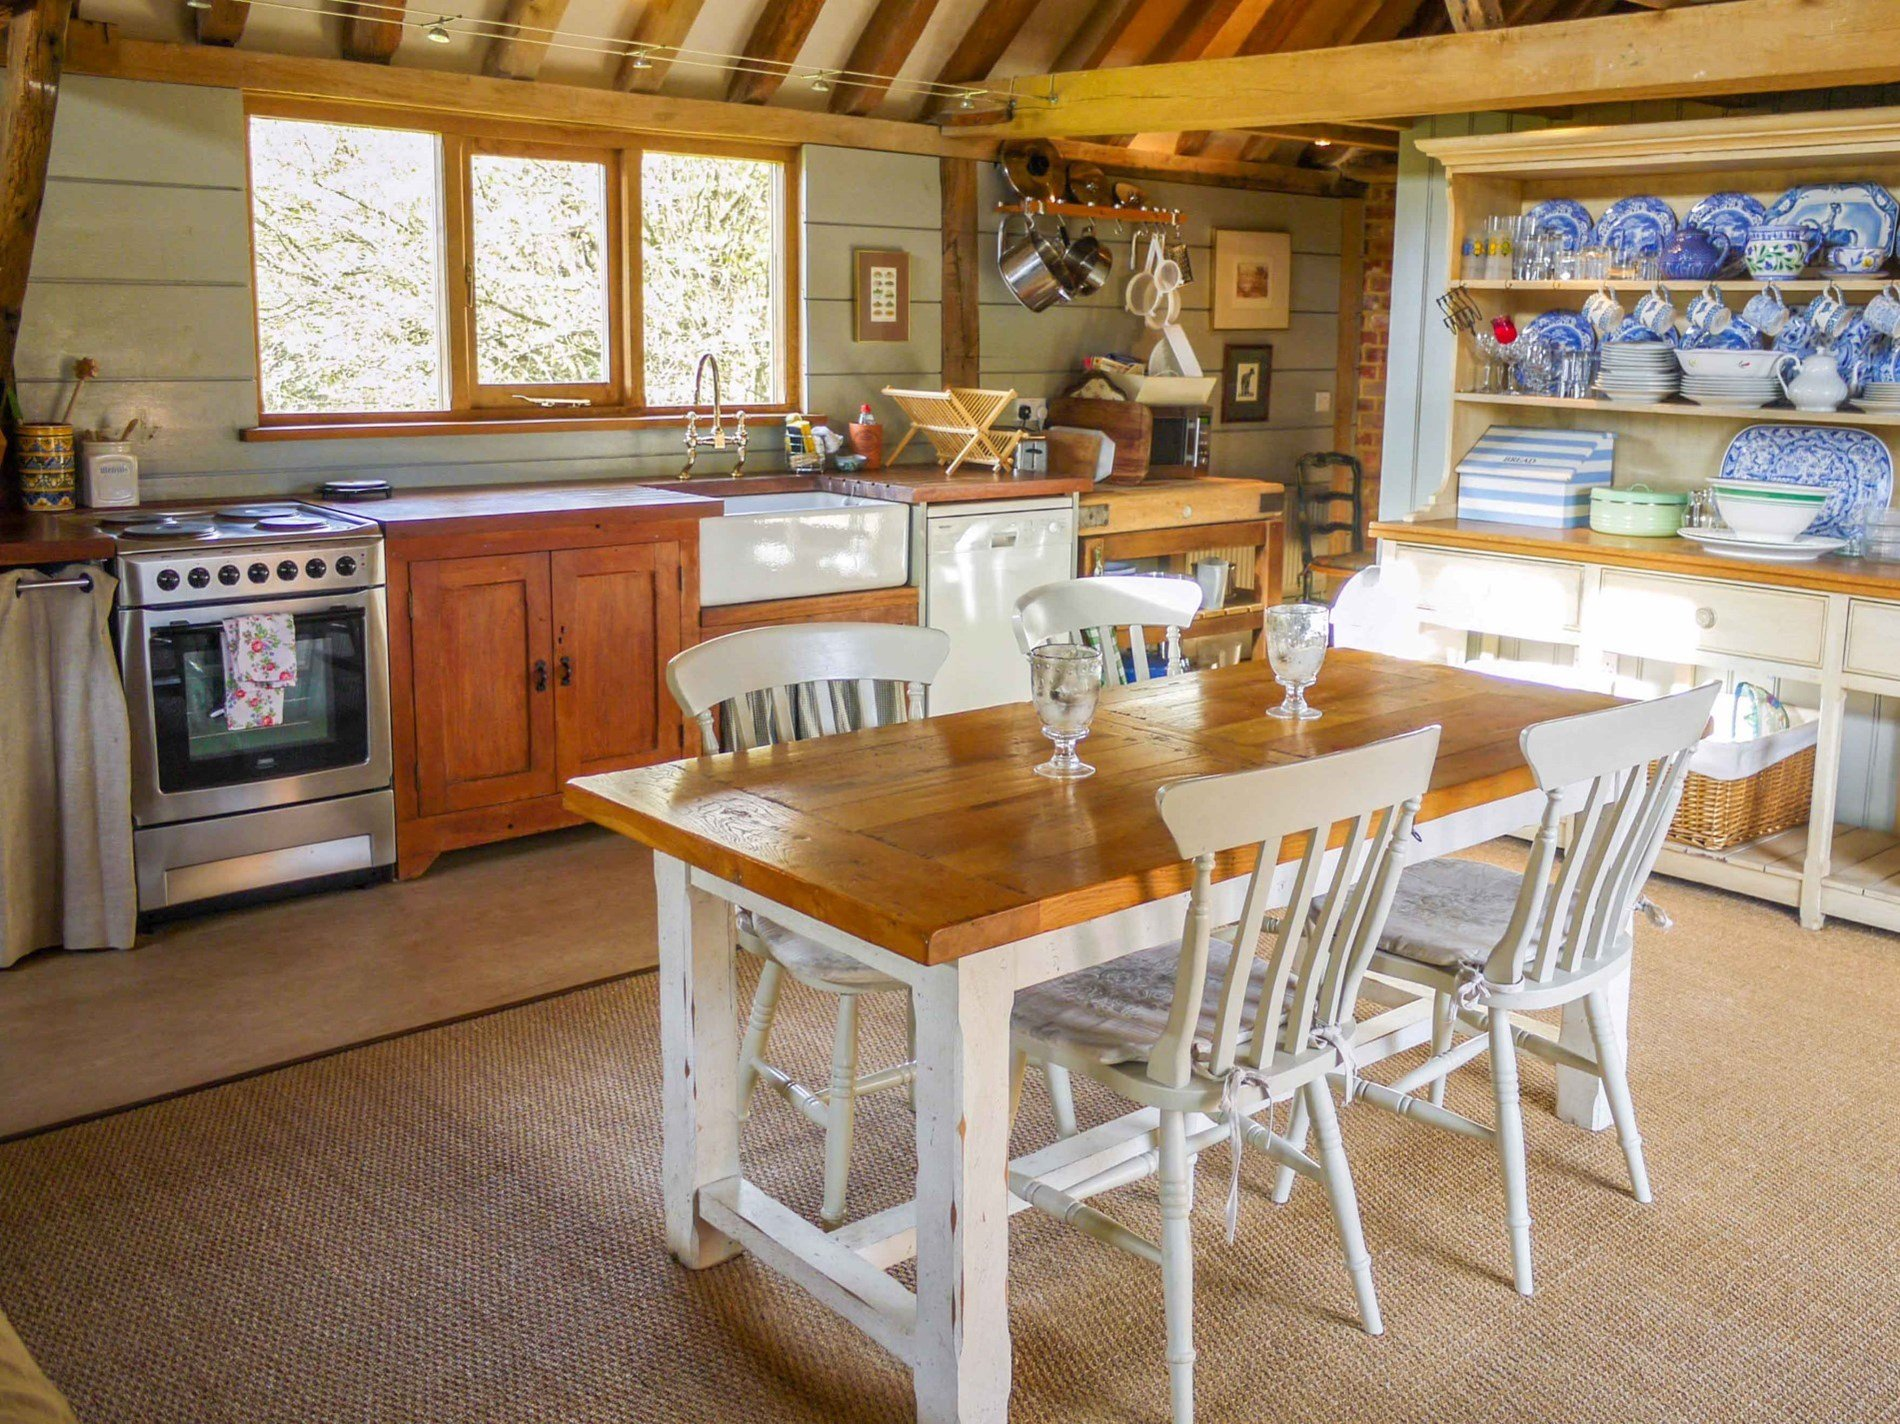 Relax in the spacious kitchen/dining area